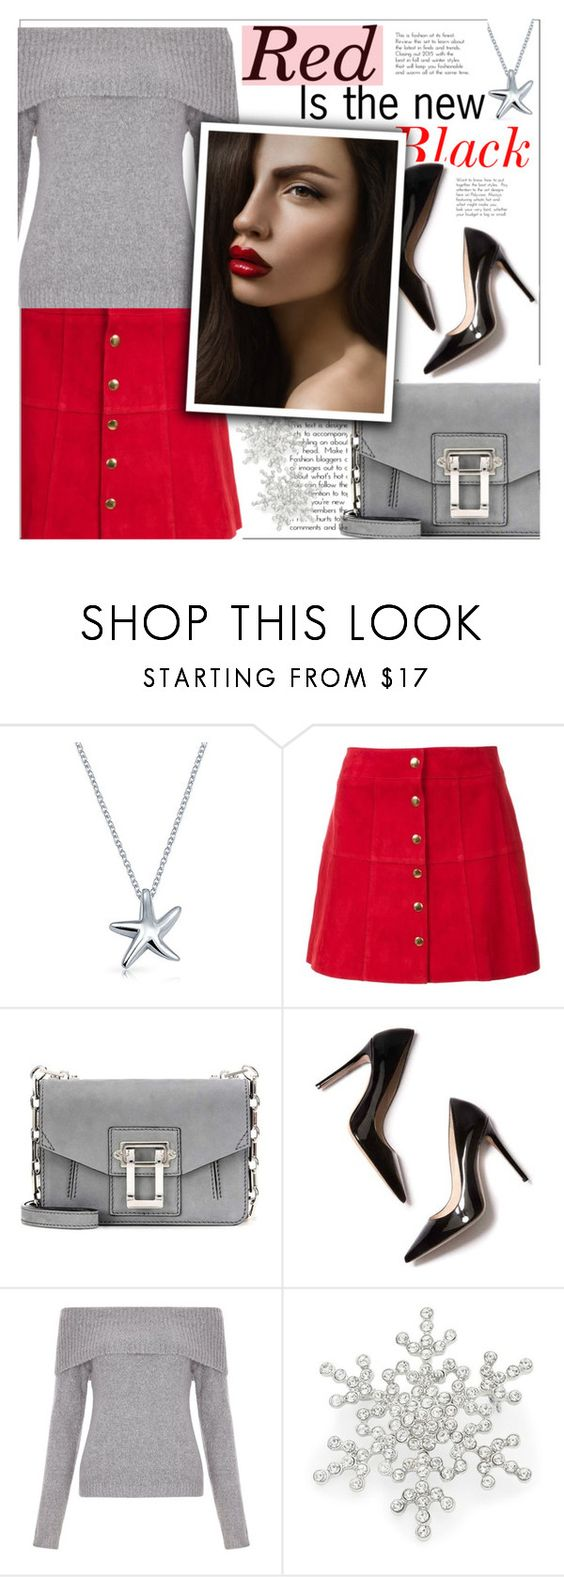 """Red"" by beautifulsunshine1 ❤ liked on Polyvore featuring Bling Jewelry, Ines de la Fressange, Proenza Schouler, M. Gemi, New Look and Design Lab"